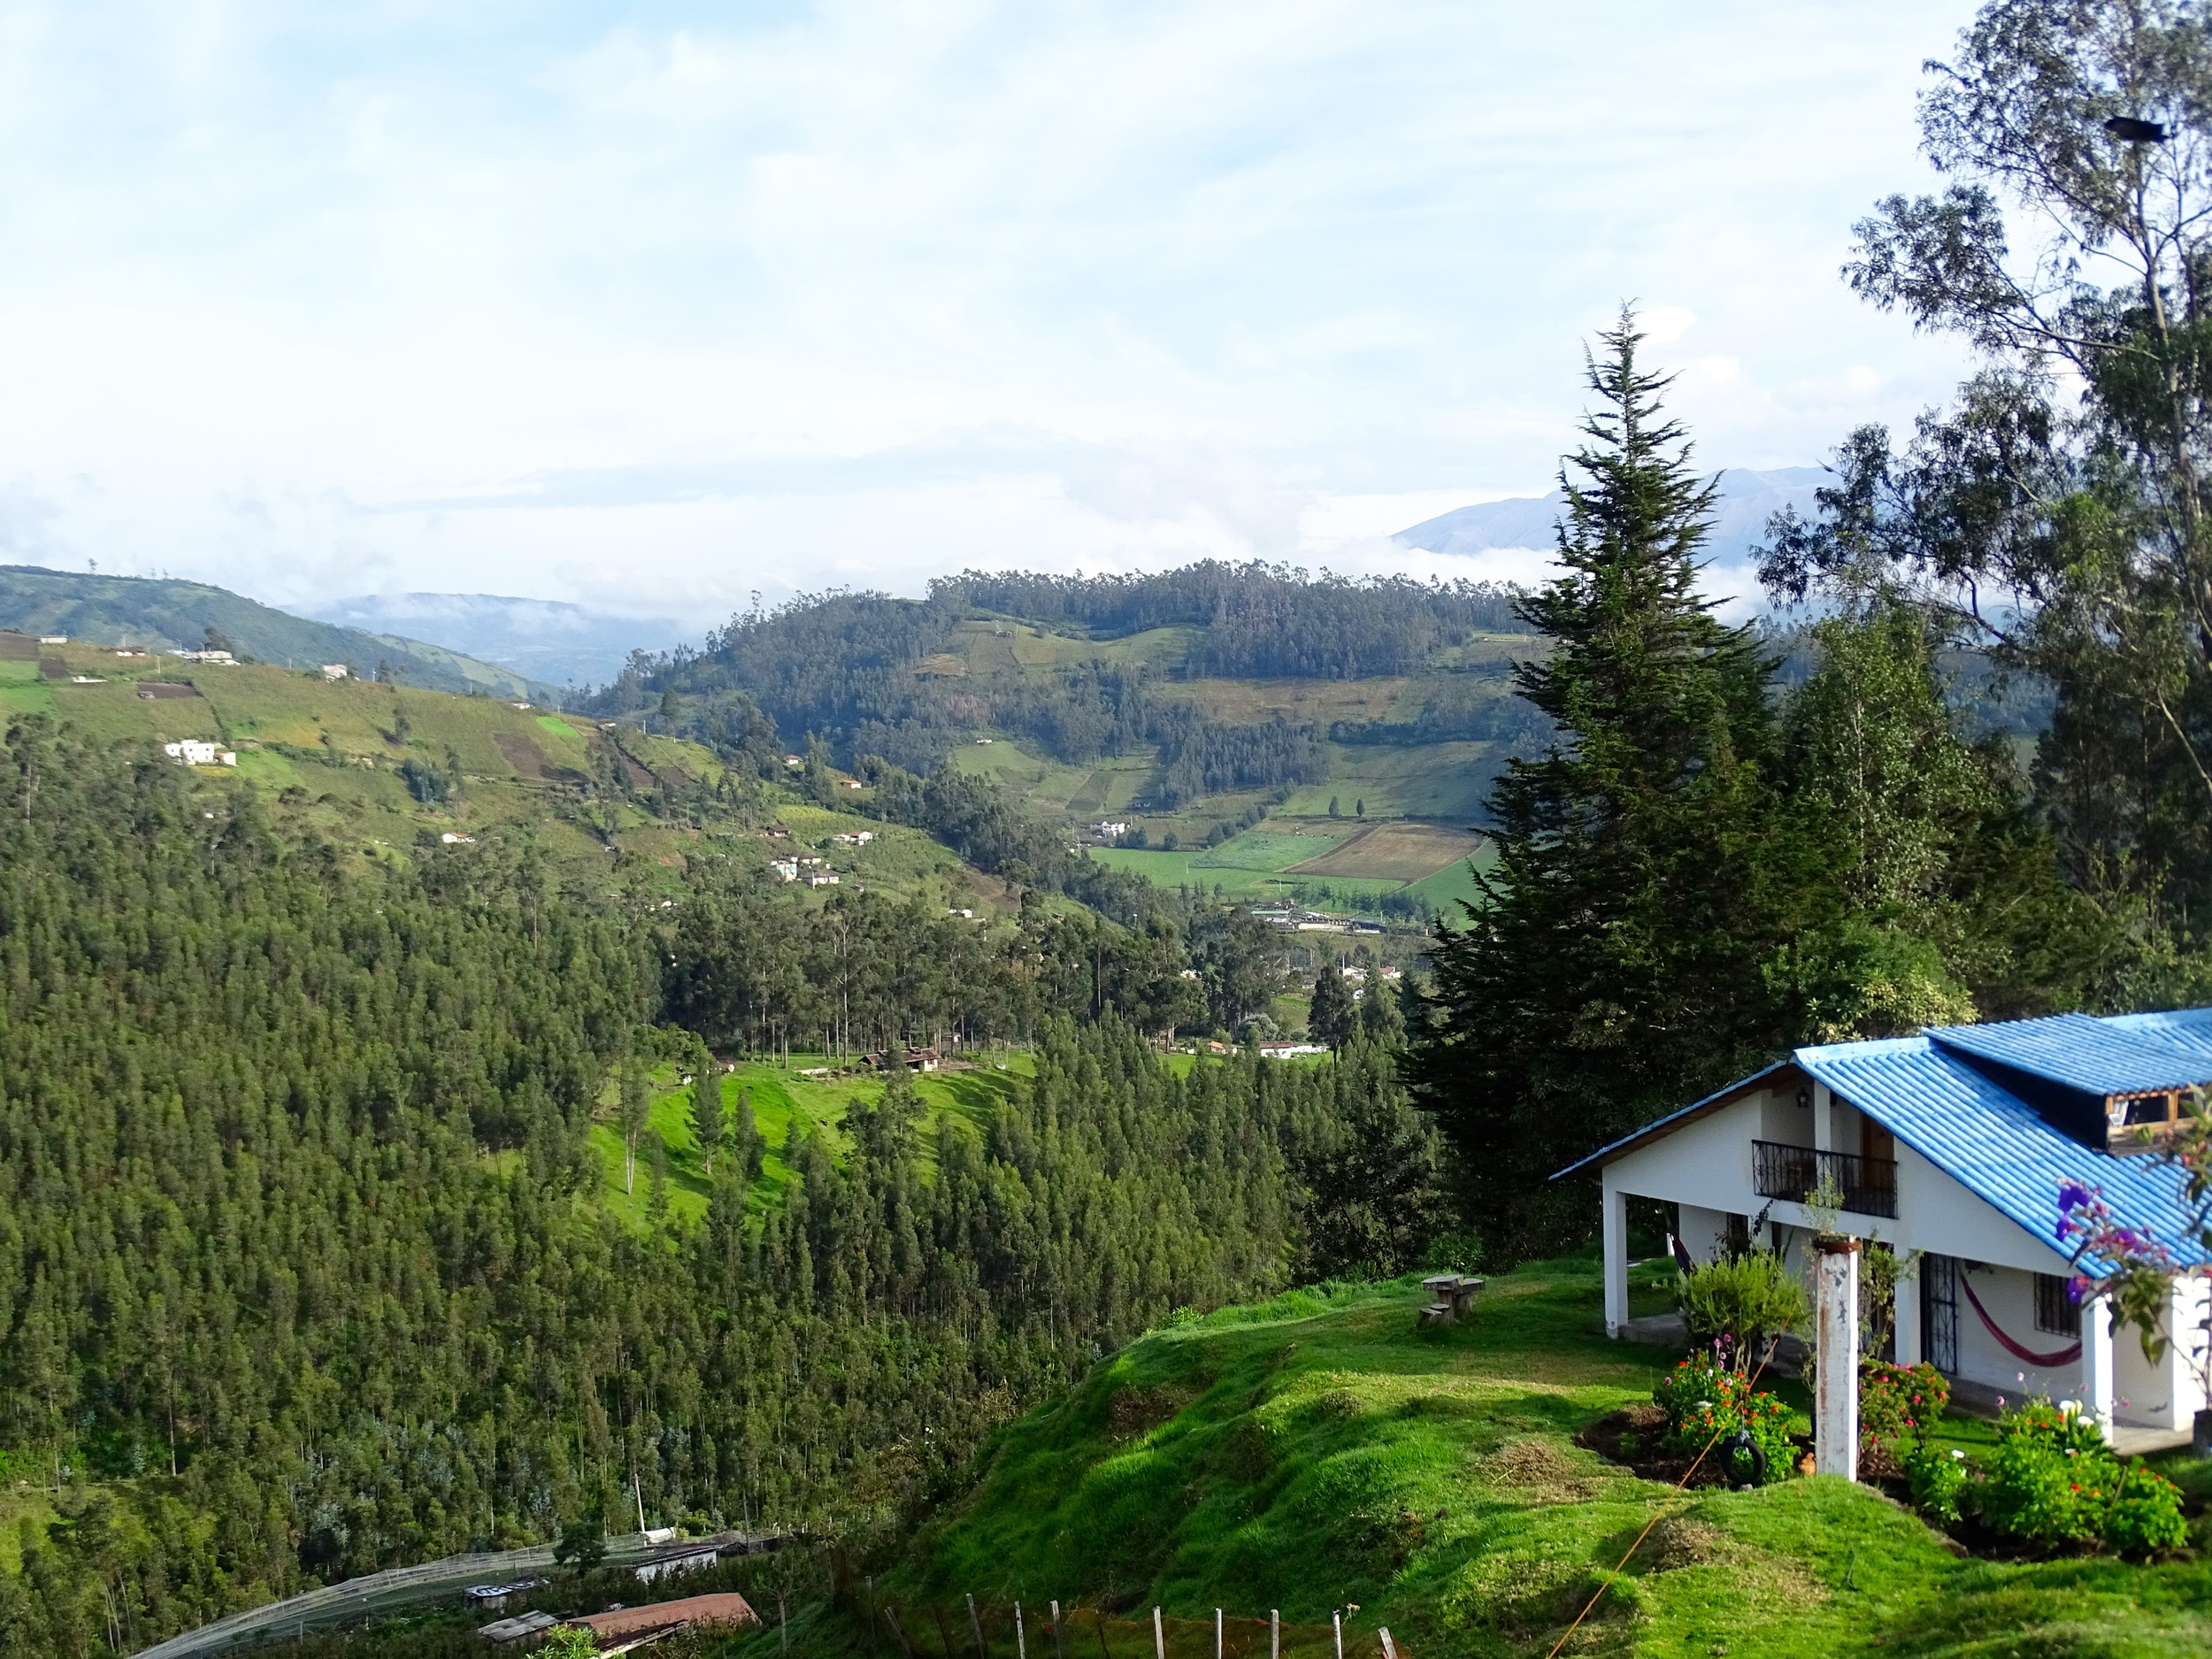 We stayed in this sweet hostel overlooking a beautiful valley an mountains.